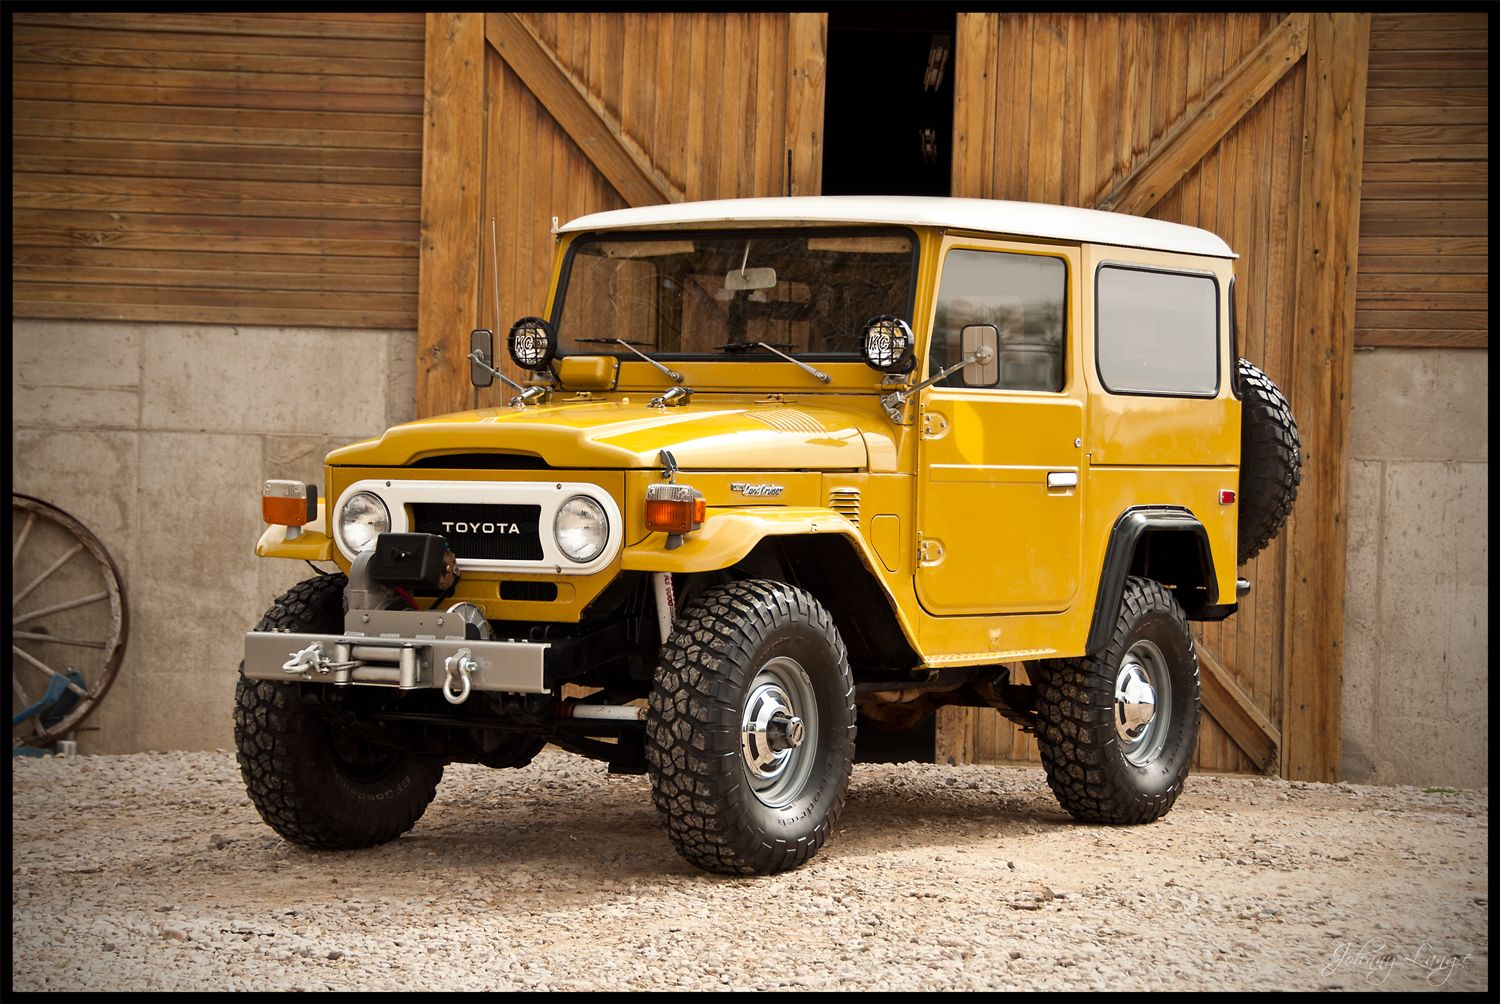 76 land cruiser fj 40 in mustard a great color for these old bulldogs